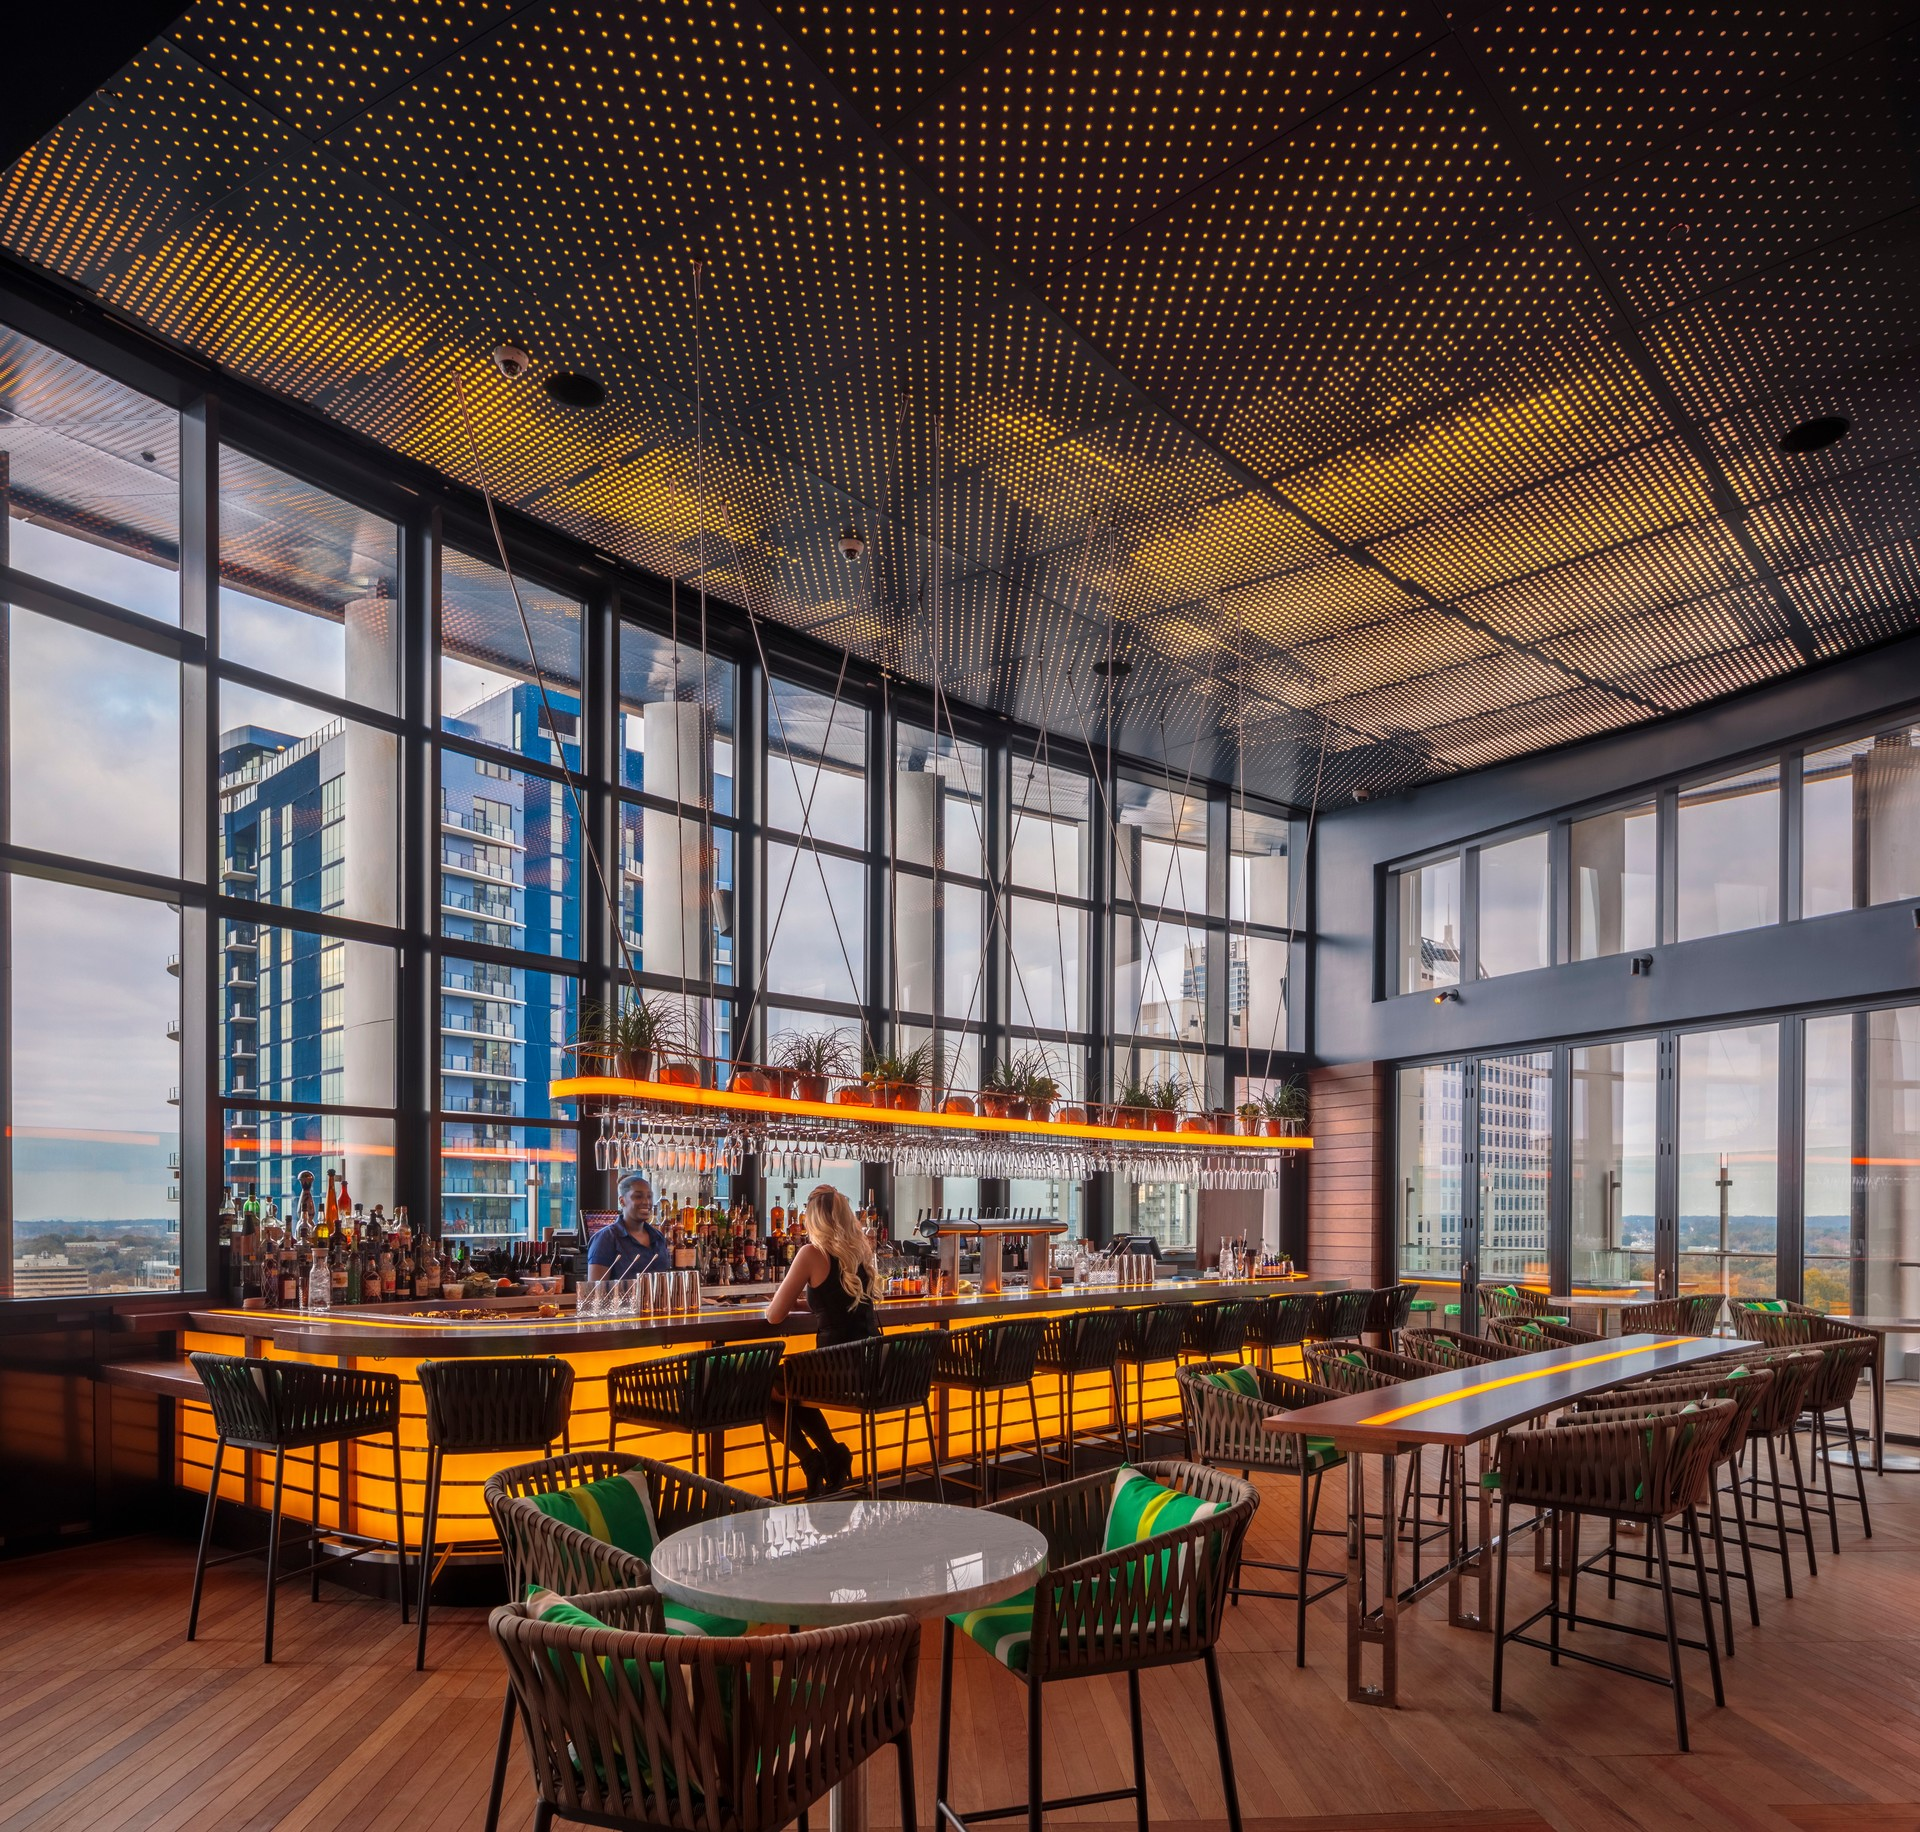 Bison's modular Ipê Wood Tiles complement the aesthetics of the Kimpton Tryon Park Hotel rooftop bar and set the contemporary look, allowing for warm accessories and modern touches.   Photography Credit: Brad Feinknopf/OTTO